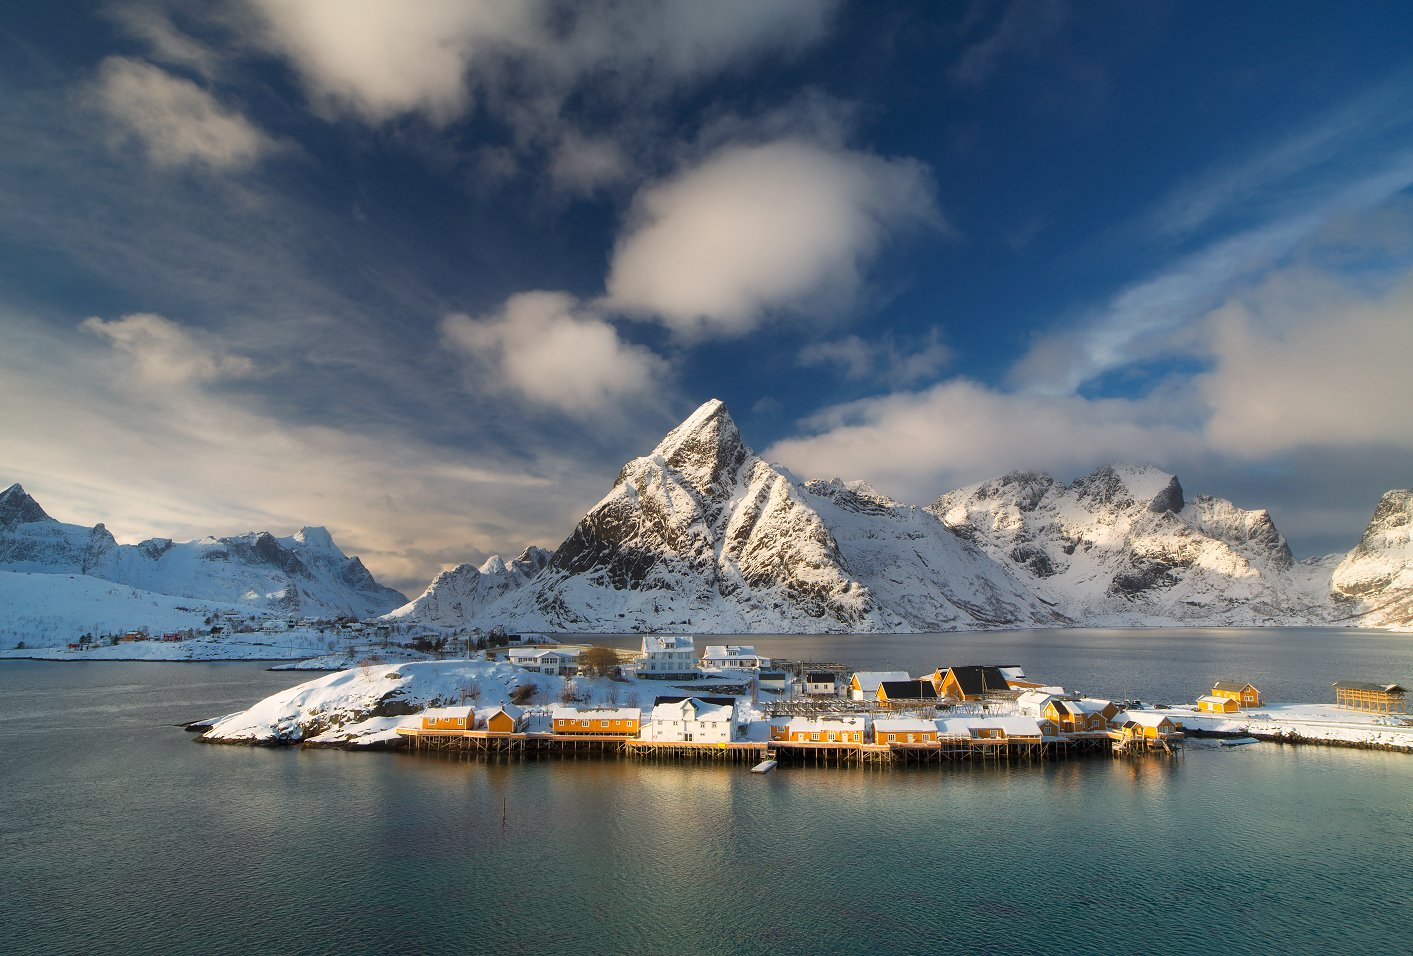 norway, lofoten, норвегия, лофотены, Сергей Луканкин